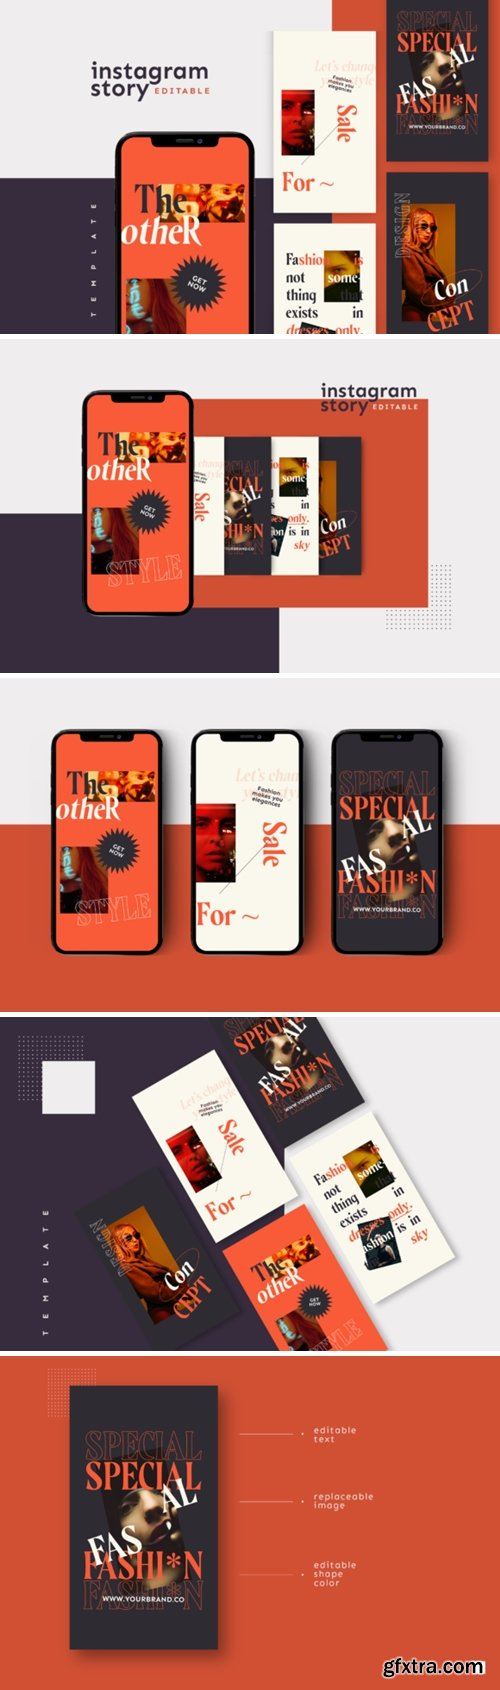 Instagram Story Template 2654456